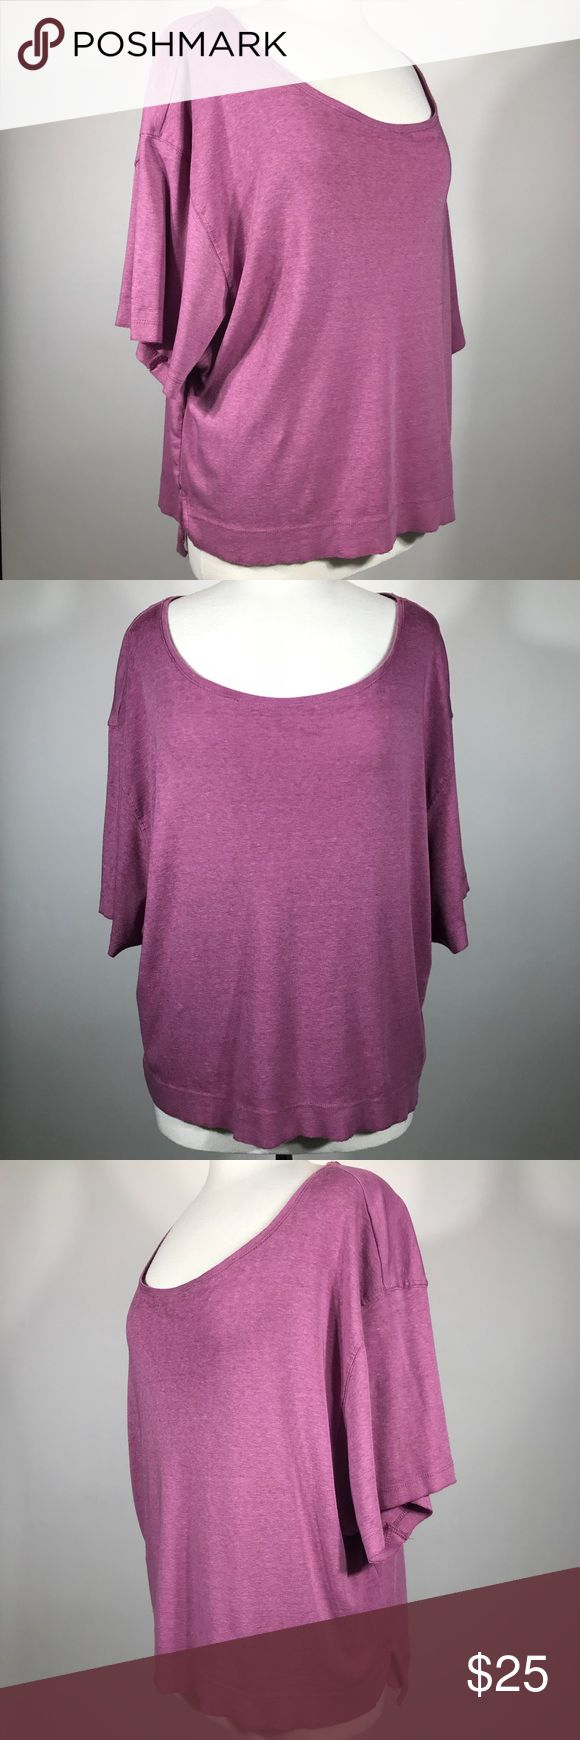 "We The Free Oversized Shirt Free People Purple Top We The Free Oversized Shirt Free People Purple Short Sleeve Crop Knit Medium  Measurements Approx (Lying Flat) 	•	Labeled: Medium 	•	Armpit to Armpit: 24.5"" 	•	Shoulder to Shoulder: 24"" 	•	Sleeve: 8.5"" 	•	Length: 25"" 